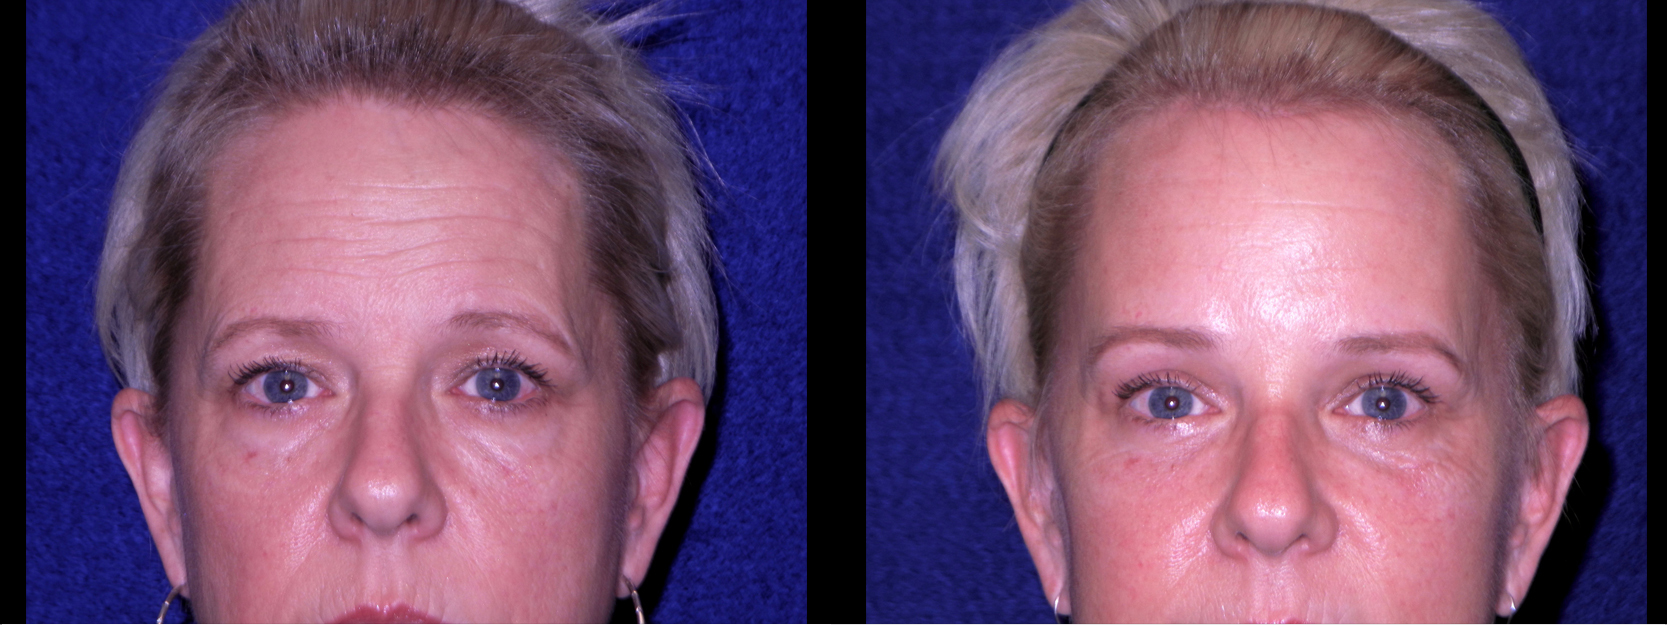 Frontal View Close Up - Facelft, Browlift and Upper Eyelid Surgery